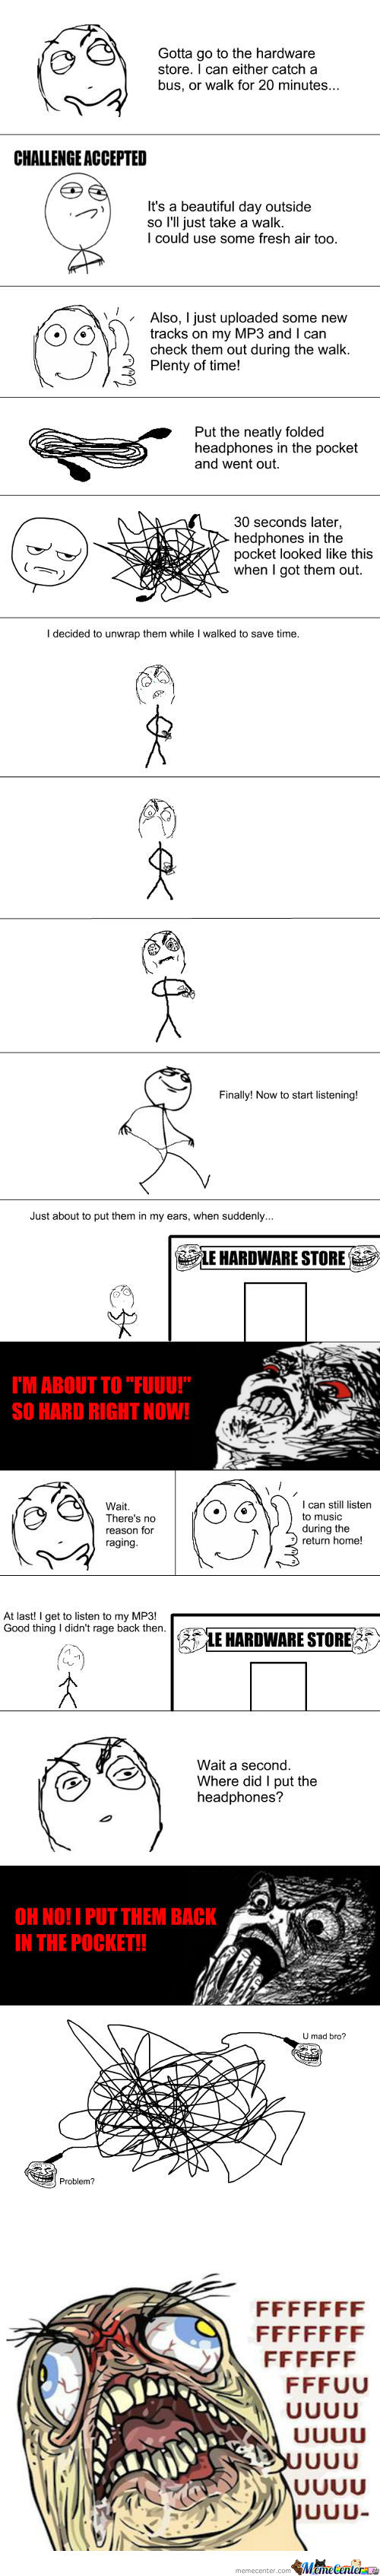 I Hate It When This Happenes